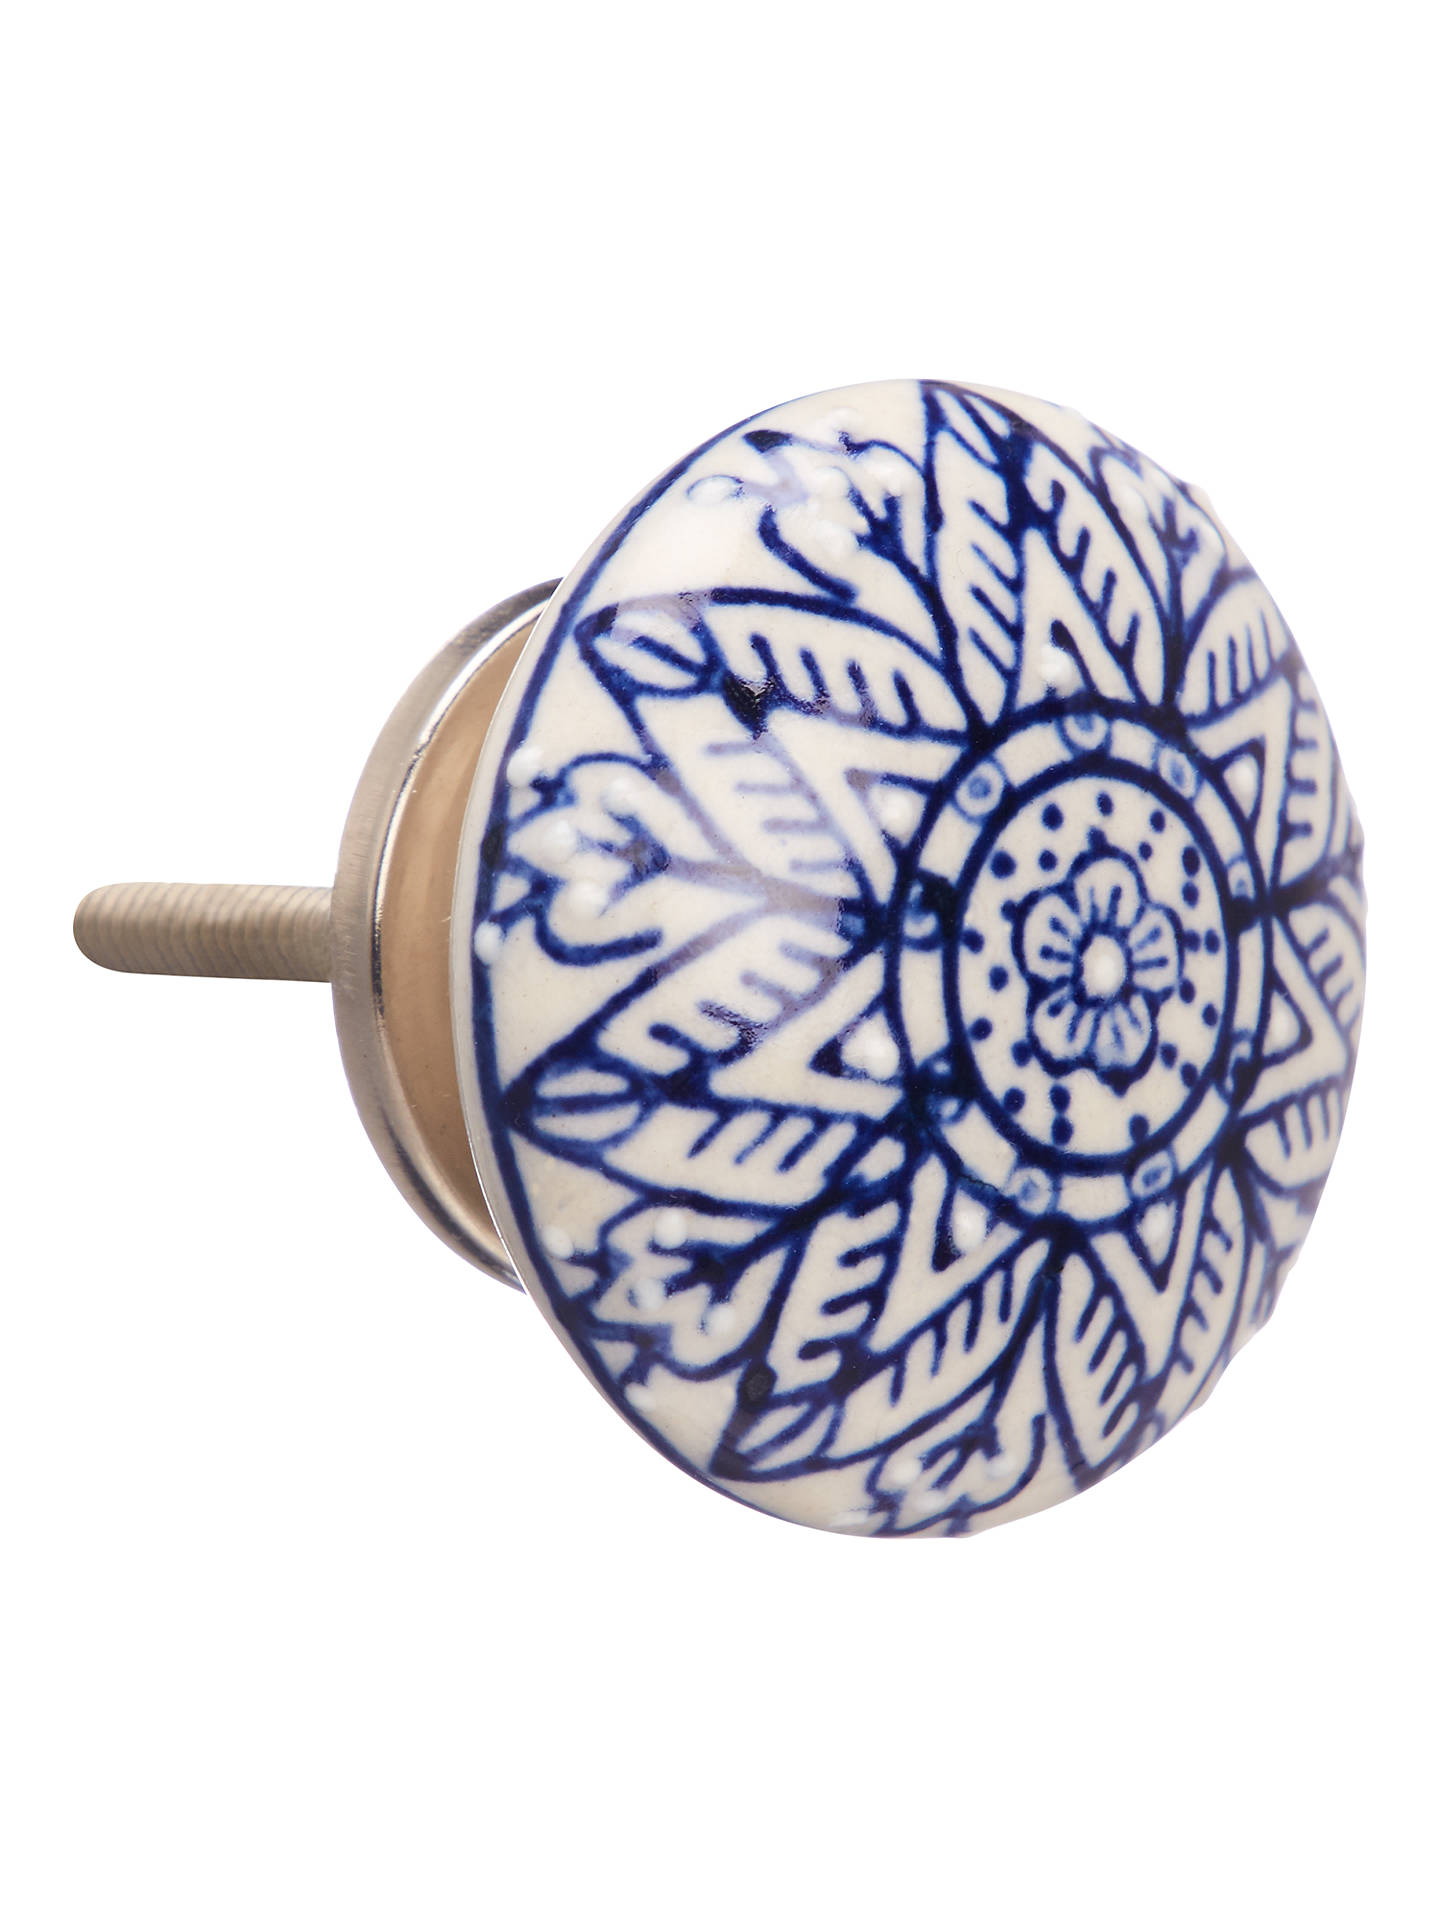 BuyJohn Lewis & Partners Embossed Ceramic Cupboard Knob, Blue/White Online at johnlewis.com